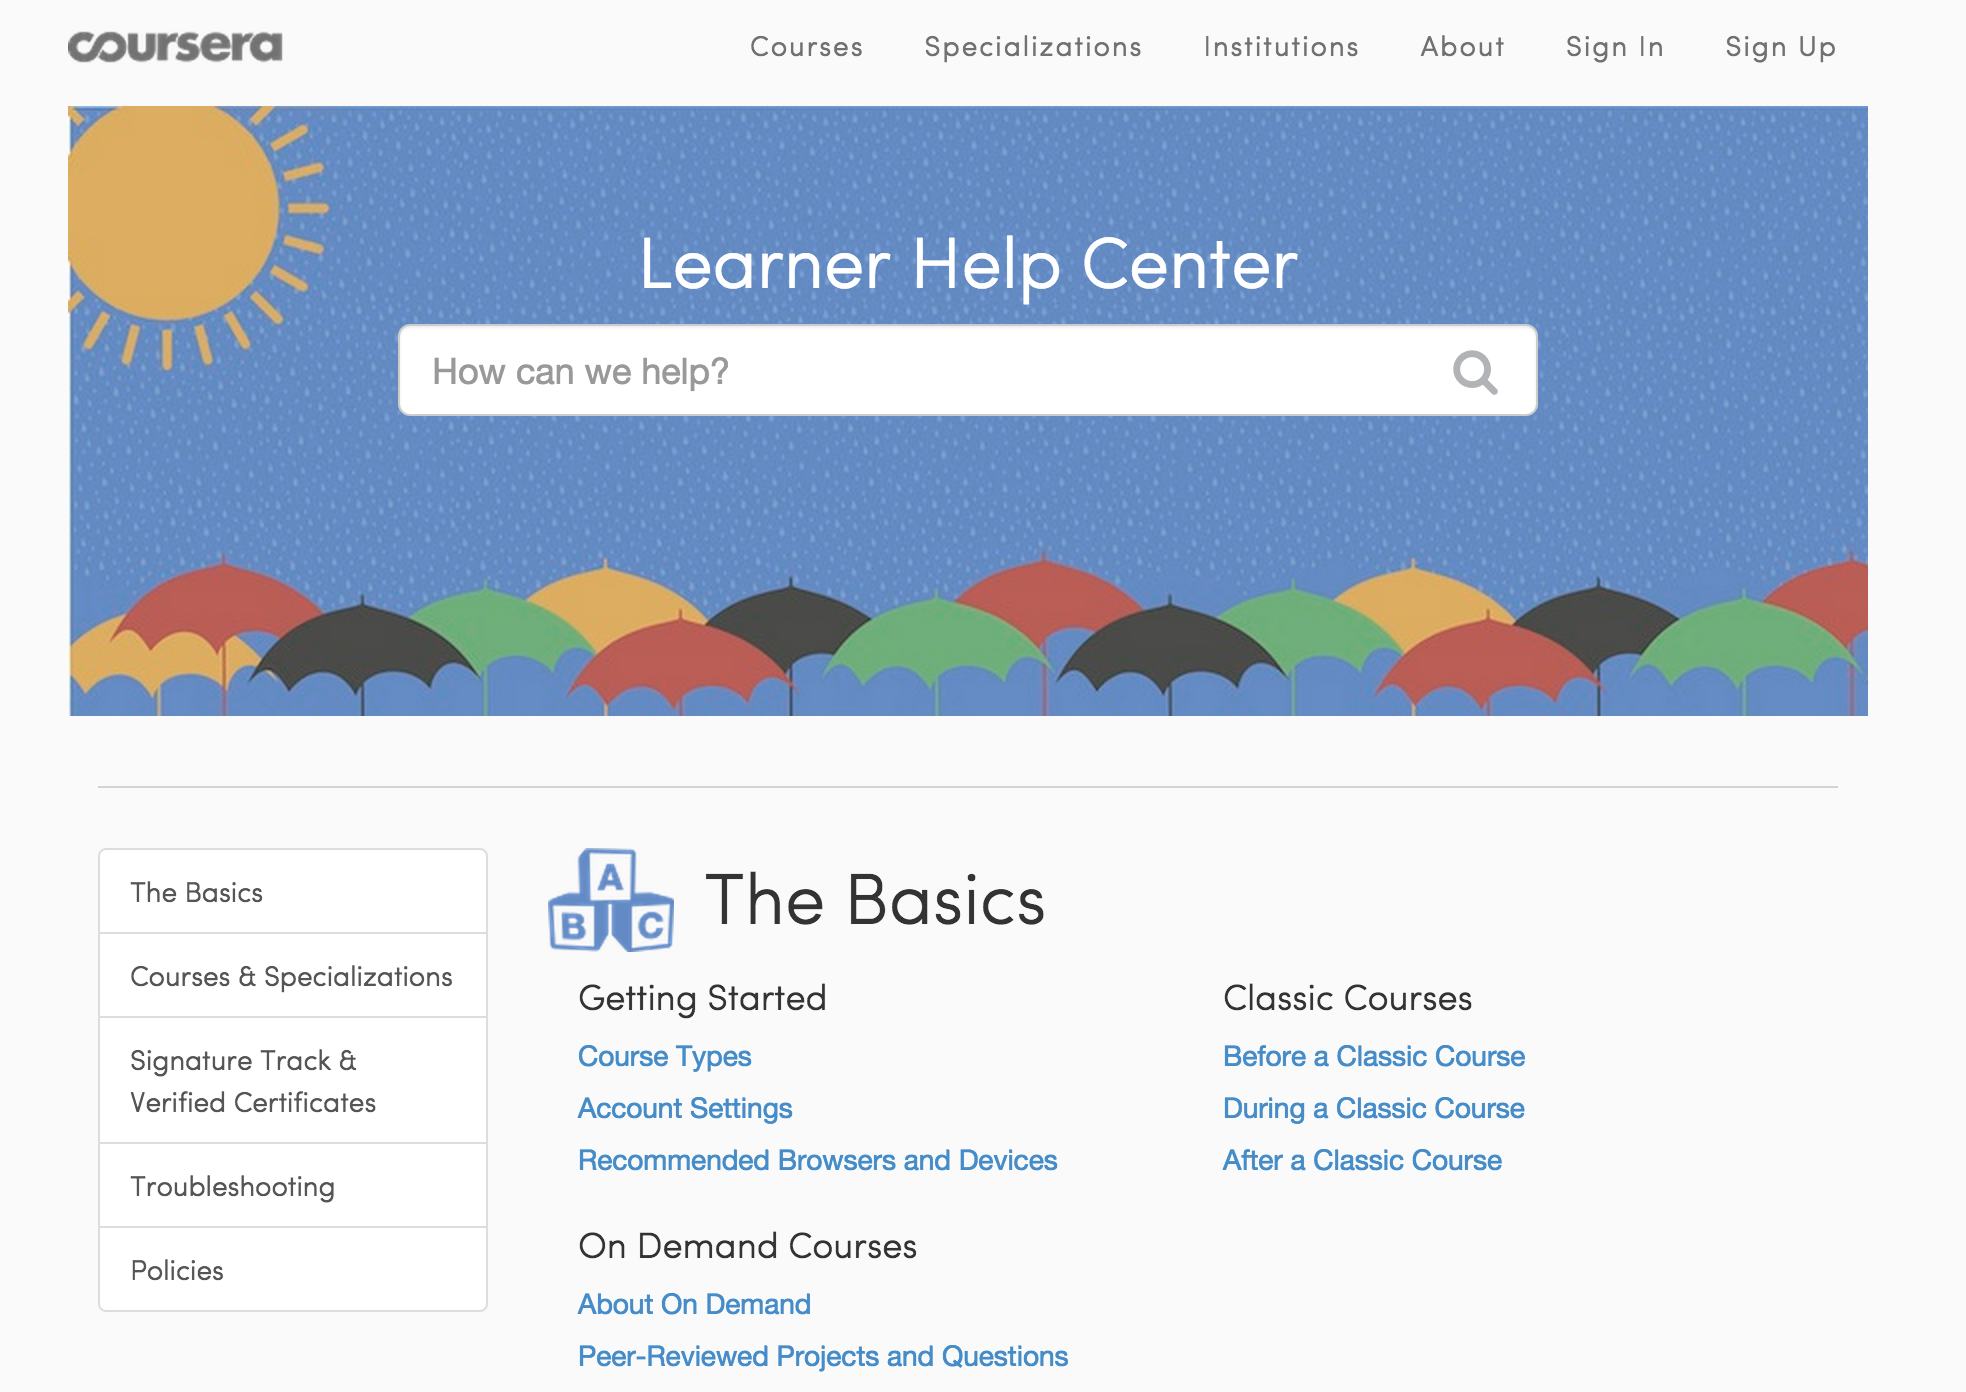 Learning is easy with the bright Coursera Help Center